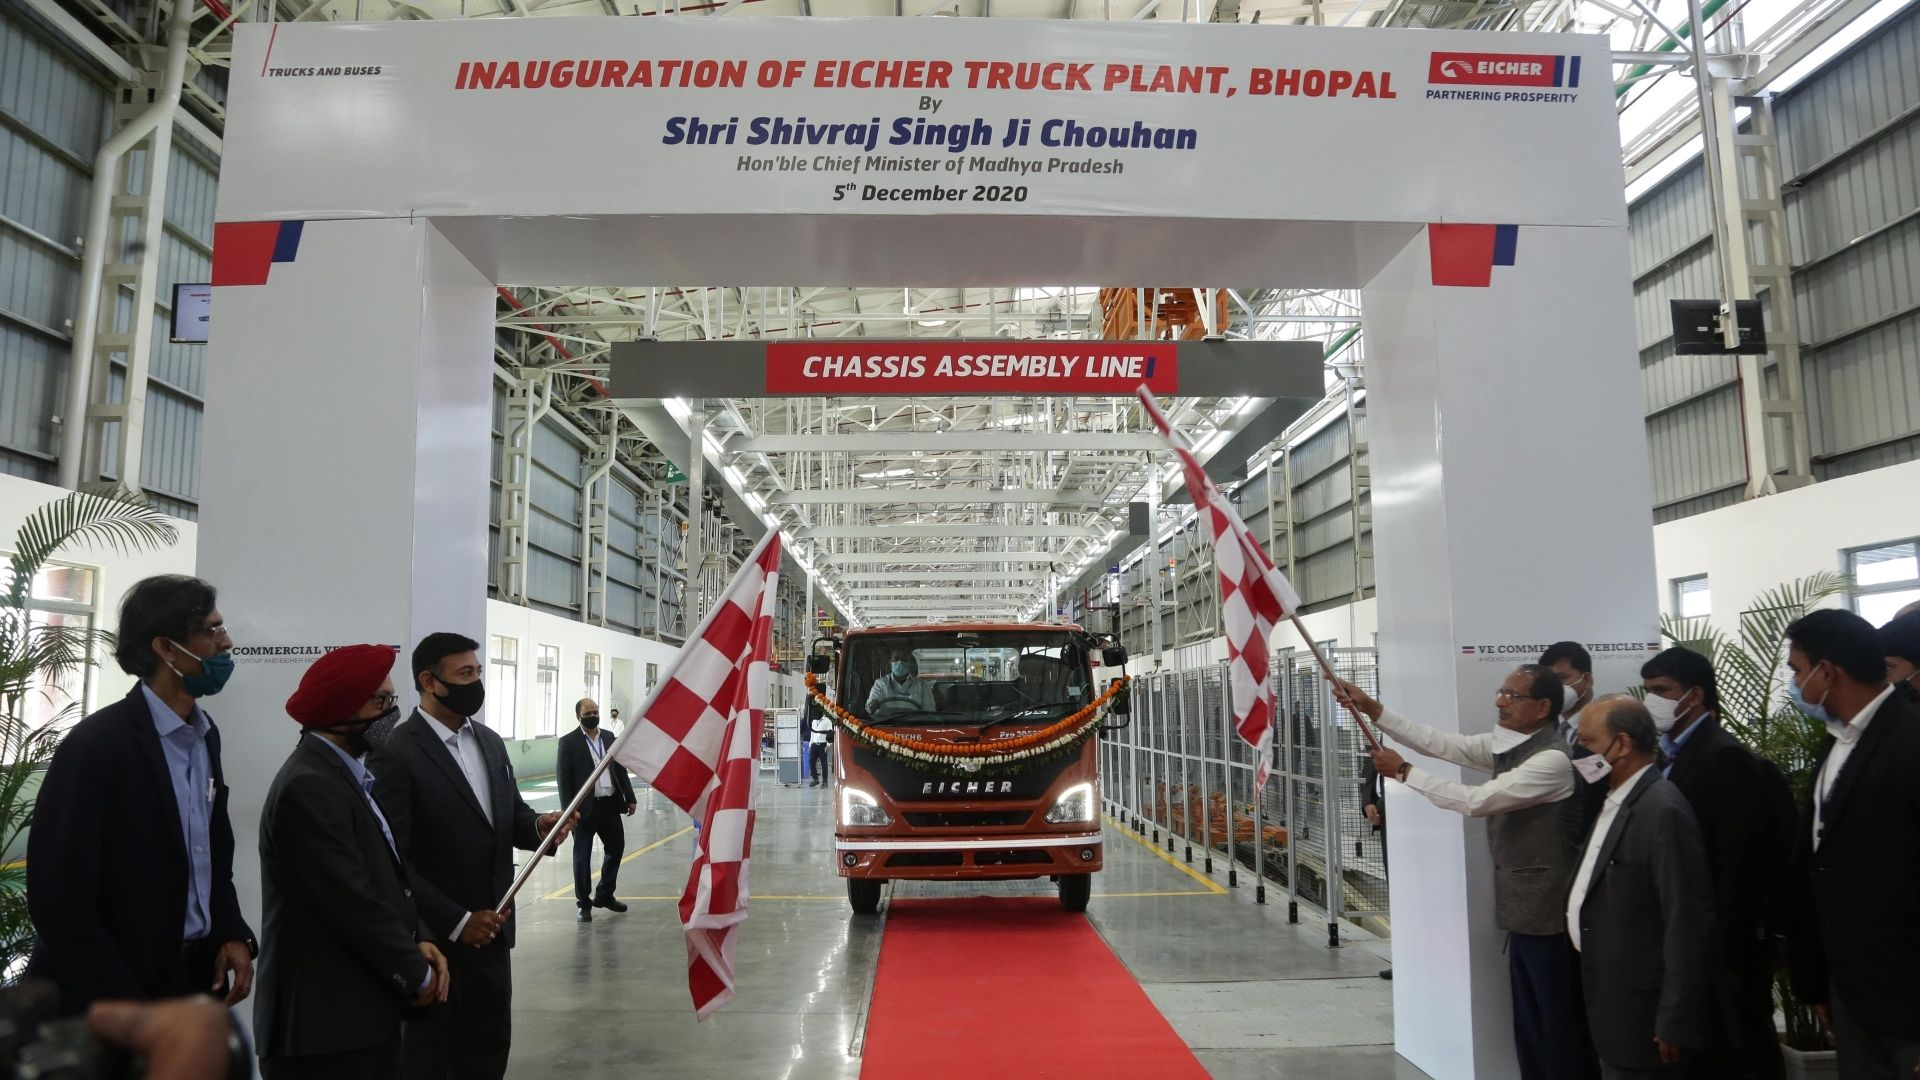 VE Commercial Vehicles (VECV) commences production at its new Truck Plant at Bhopal